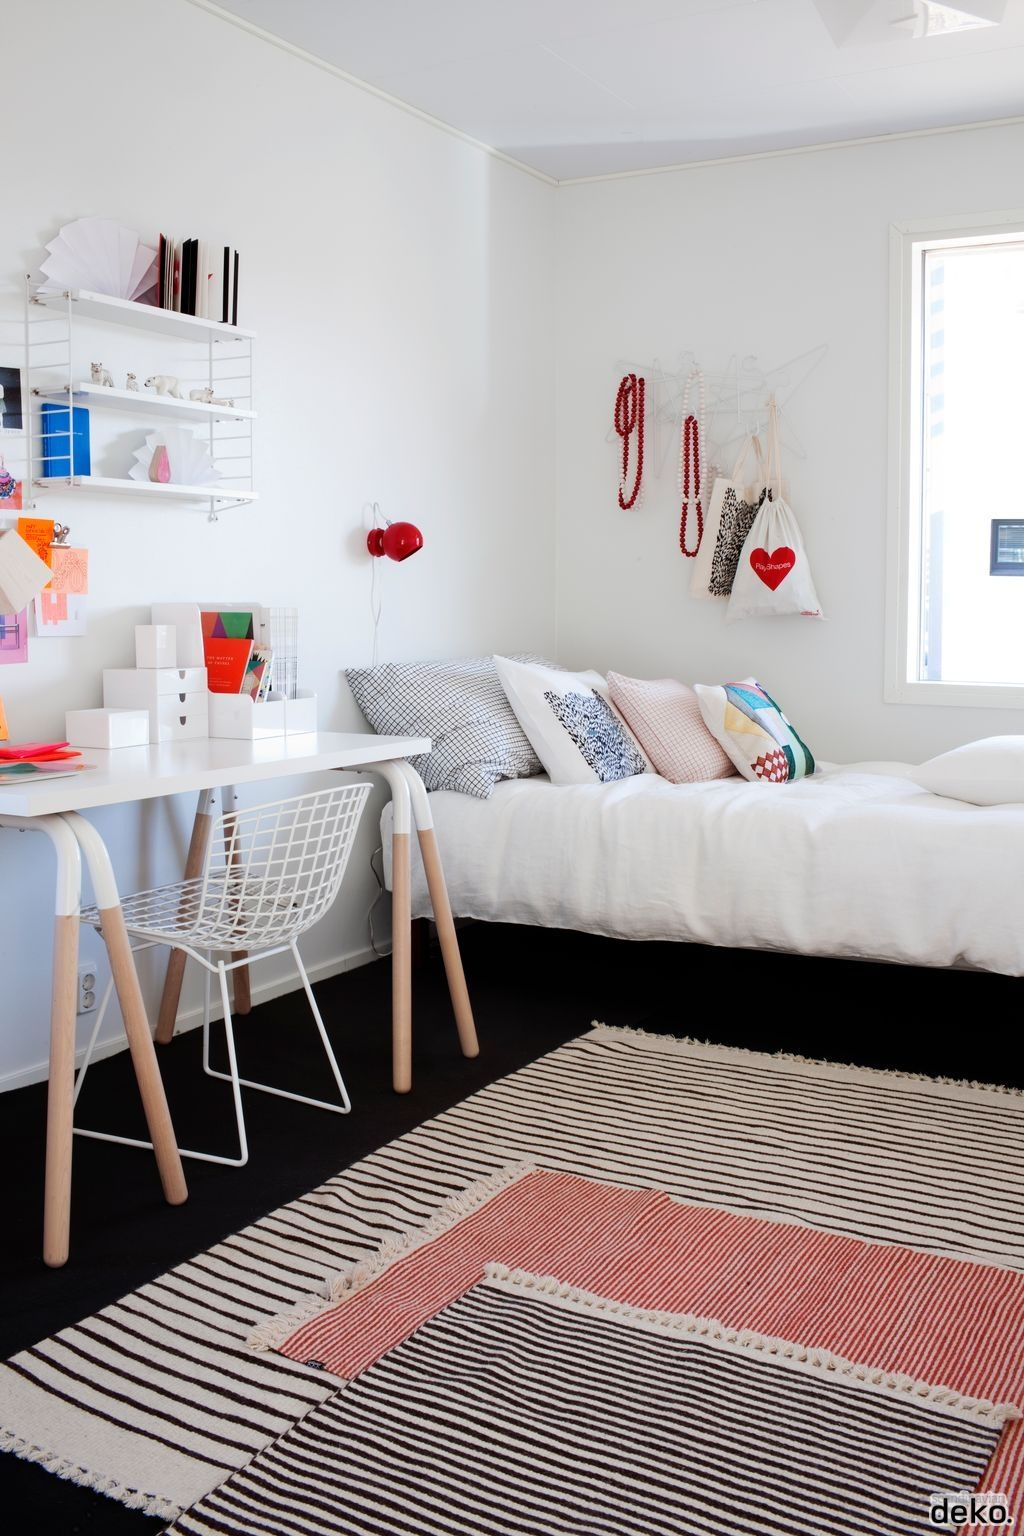 Quanto de infantil: Simples, claro e funcional. / Kids room: Simple, clean and functional.